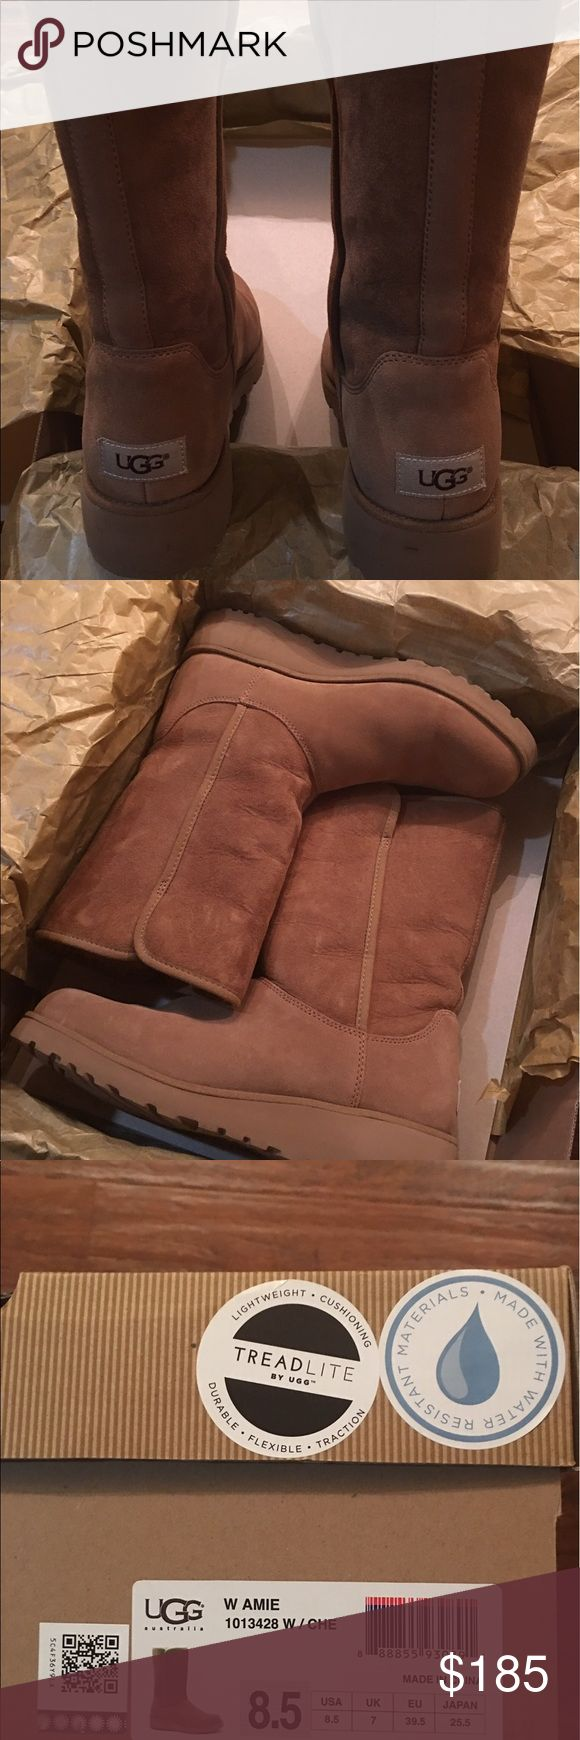 Authentic UGG boots size 8.5 brand new with box! These boots are brand new only worn ones! They come with the original bag & box from the UGG store where I originally bought them and they are waterproof! UGG Shoes Ankle Boots & Booties